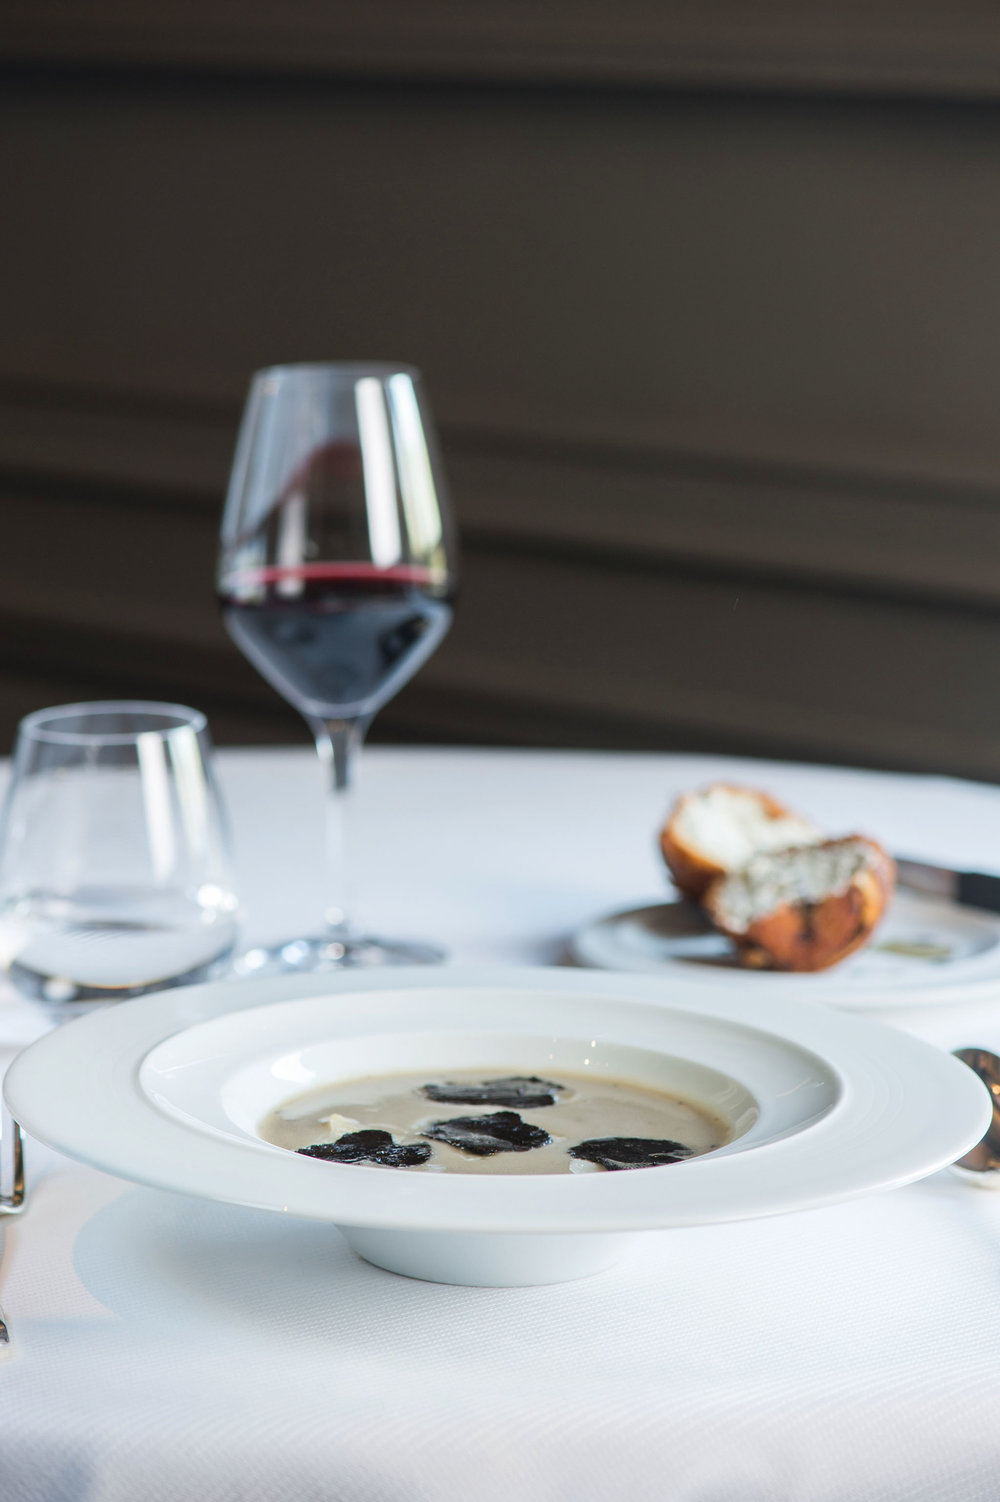 Artichoke soup with black truffle; layered truffled mushroom brioche.